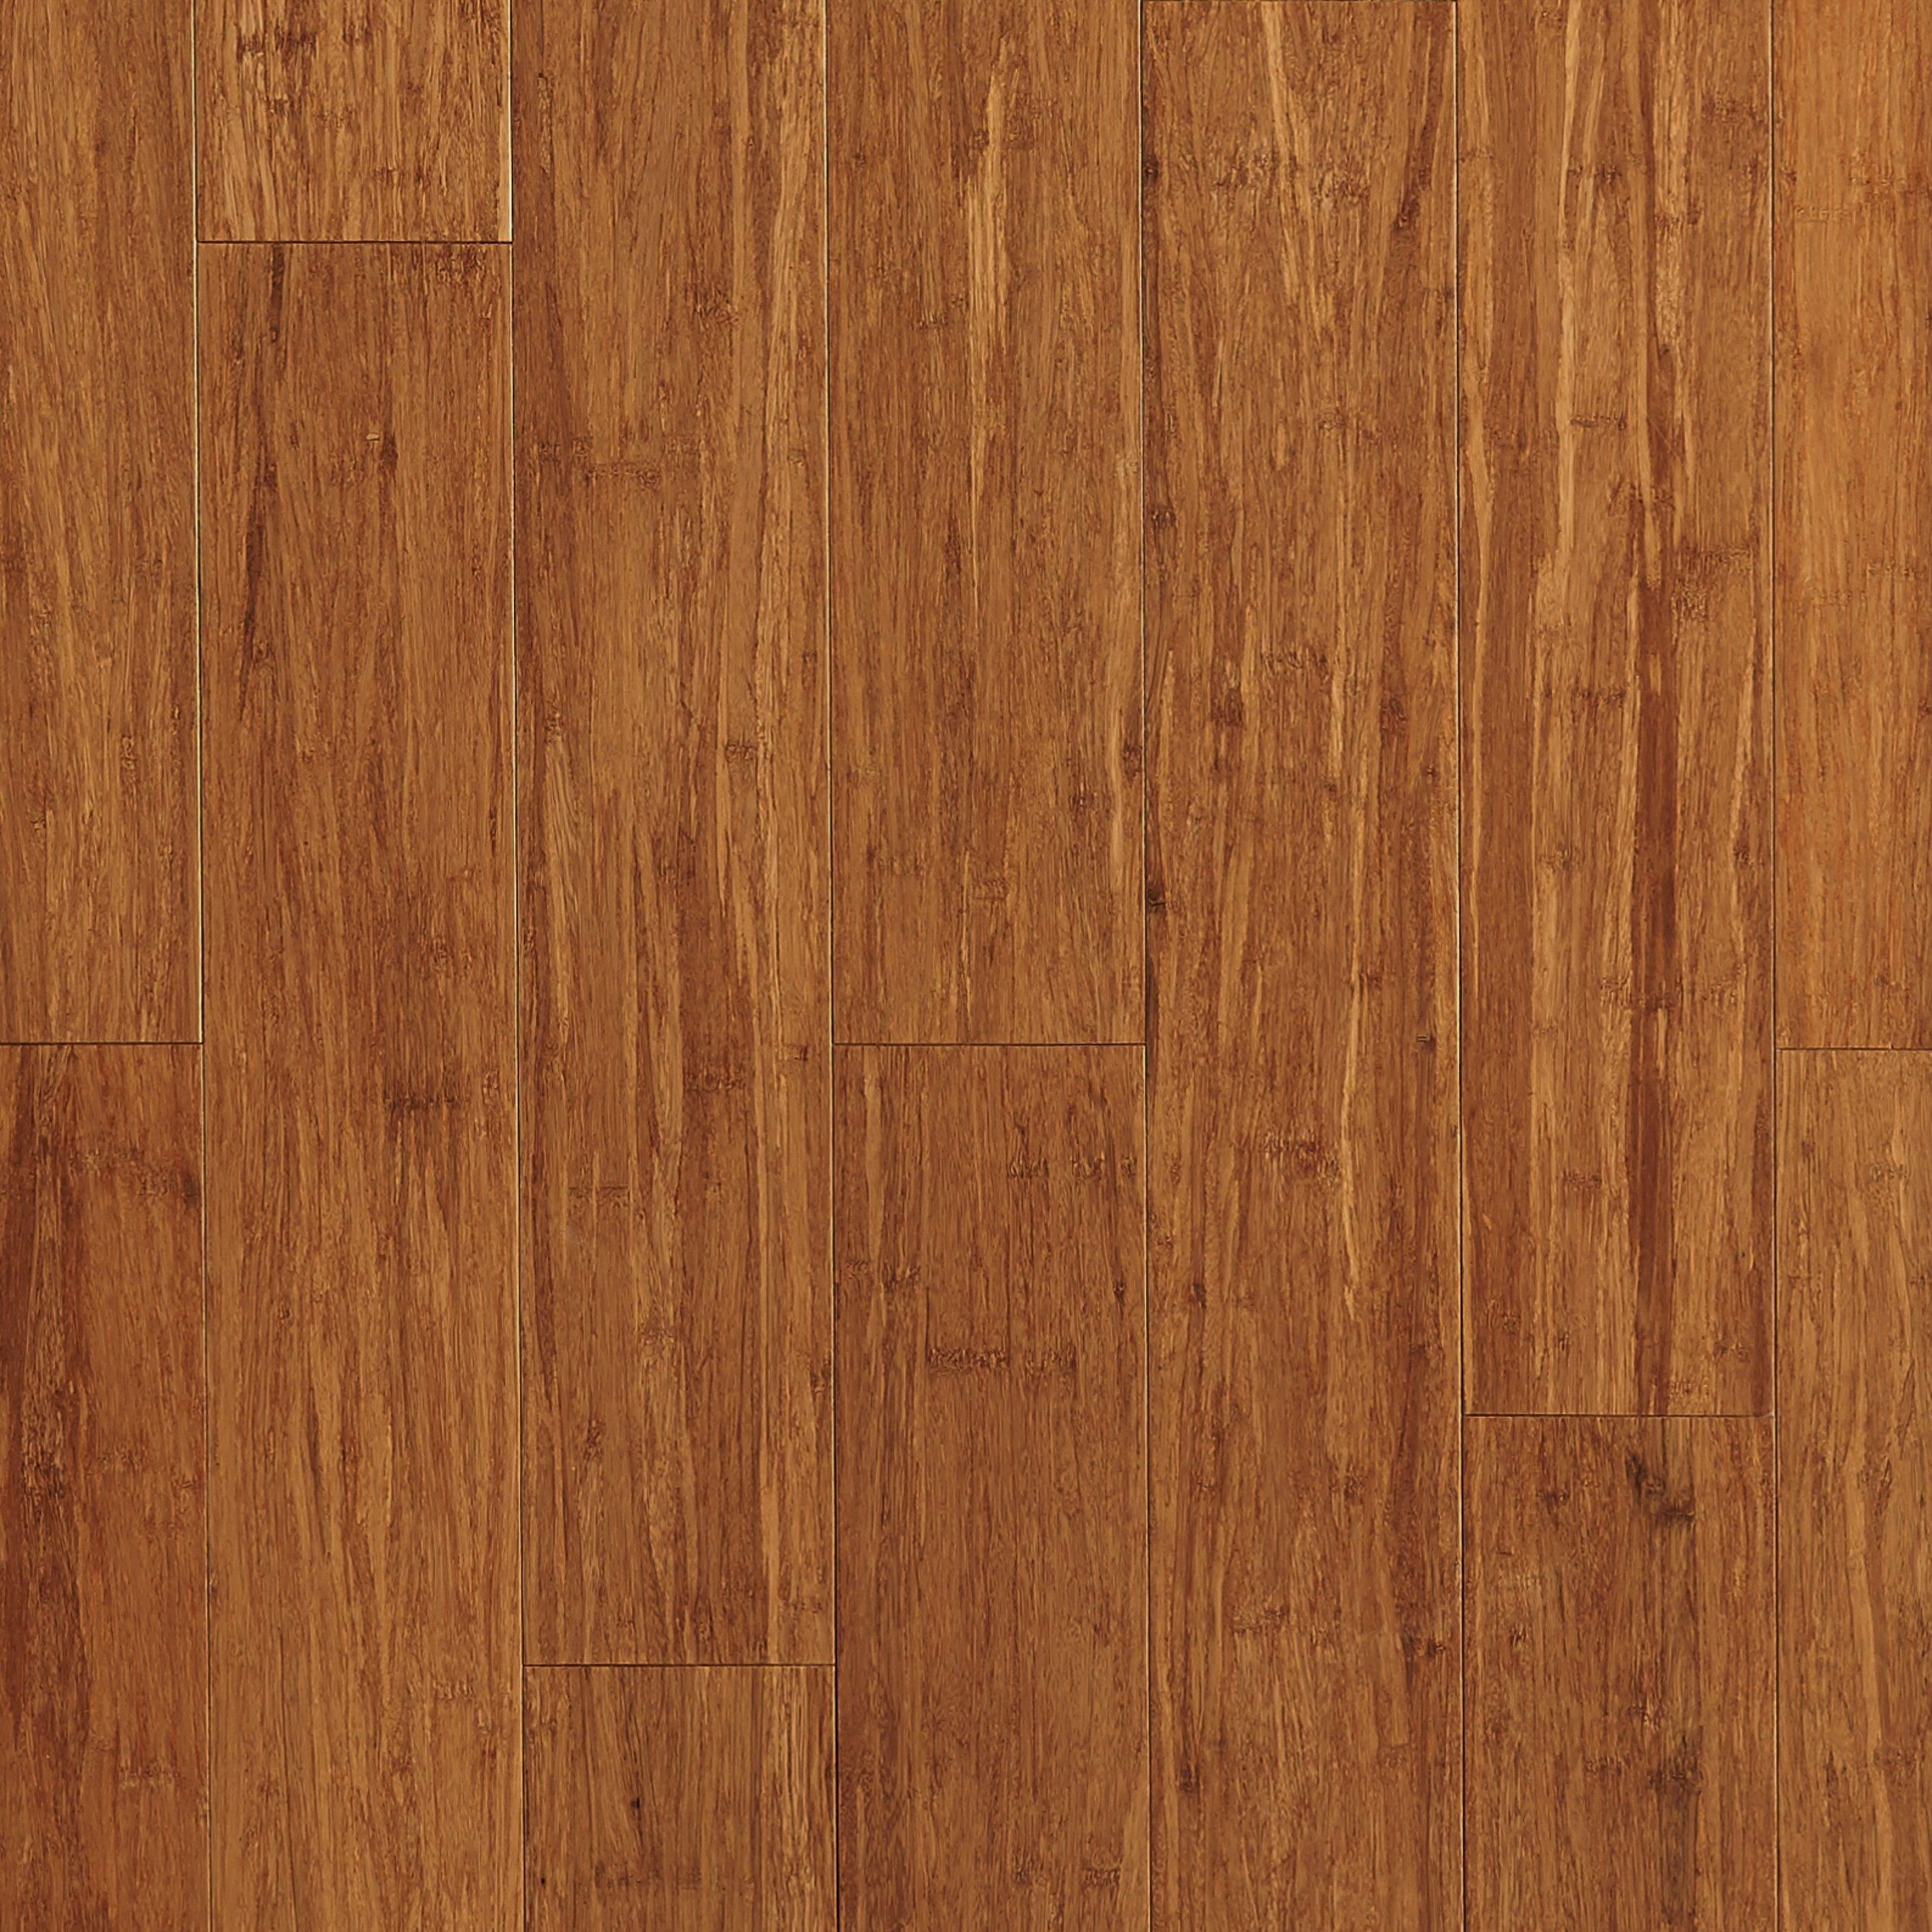 Mocha Locking Solid Stranded Bamboo Flooring Bamboo Home Improvement